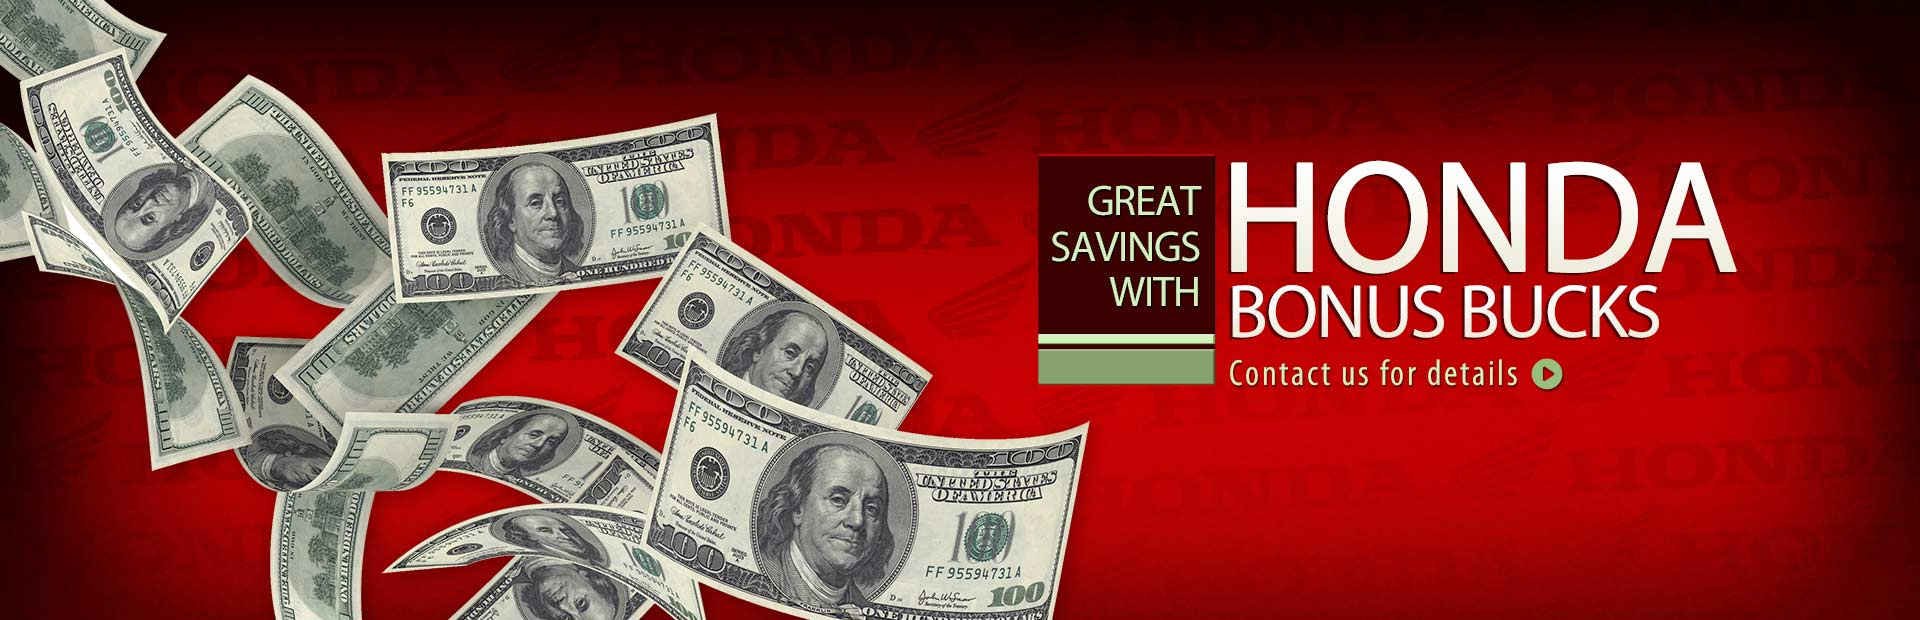 Great savings with Honda Bonus Bucks! Click here to contact us.